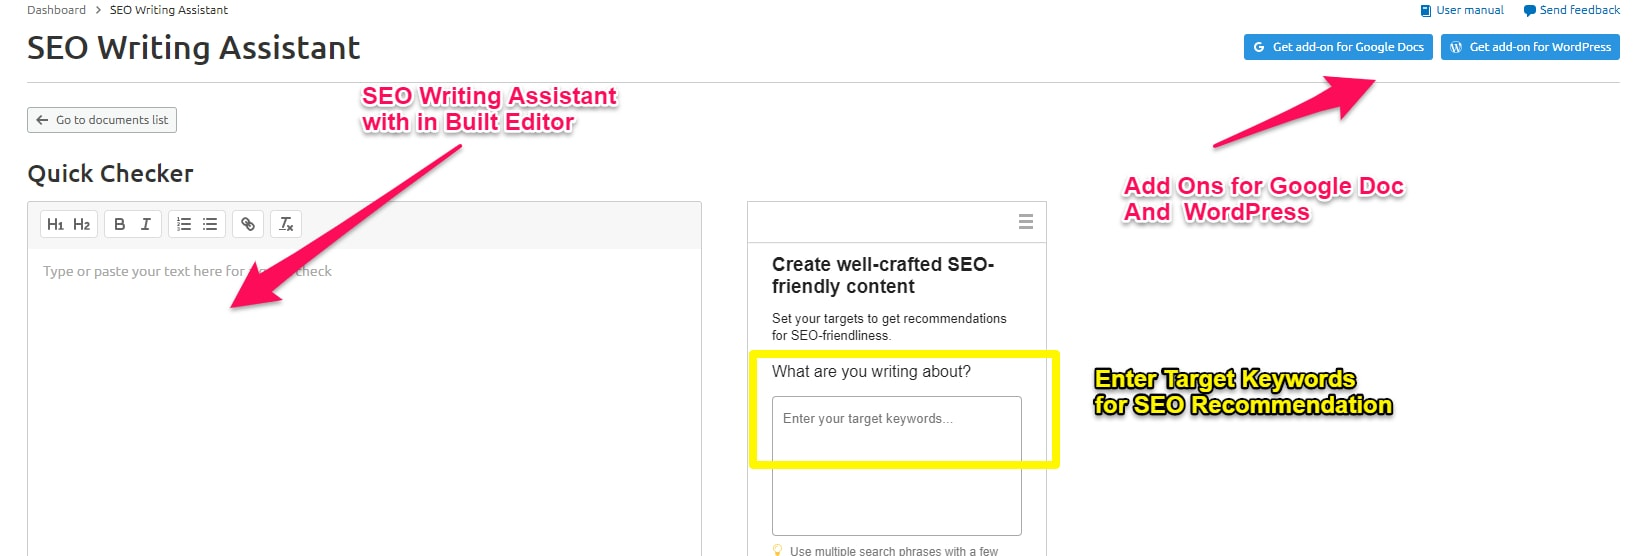 SEO Writing Assistant Overview